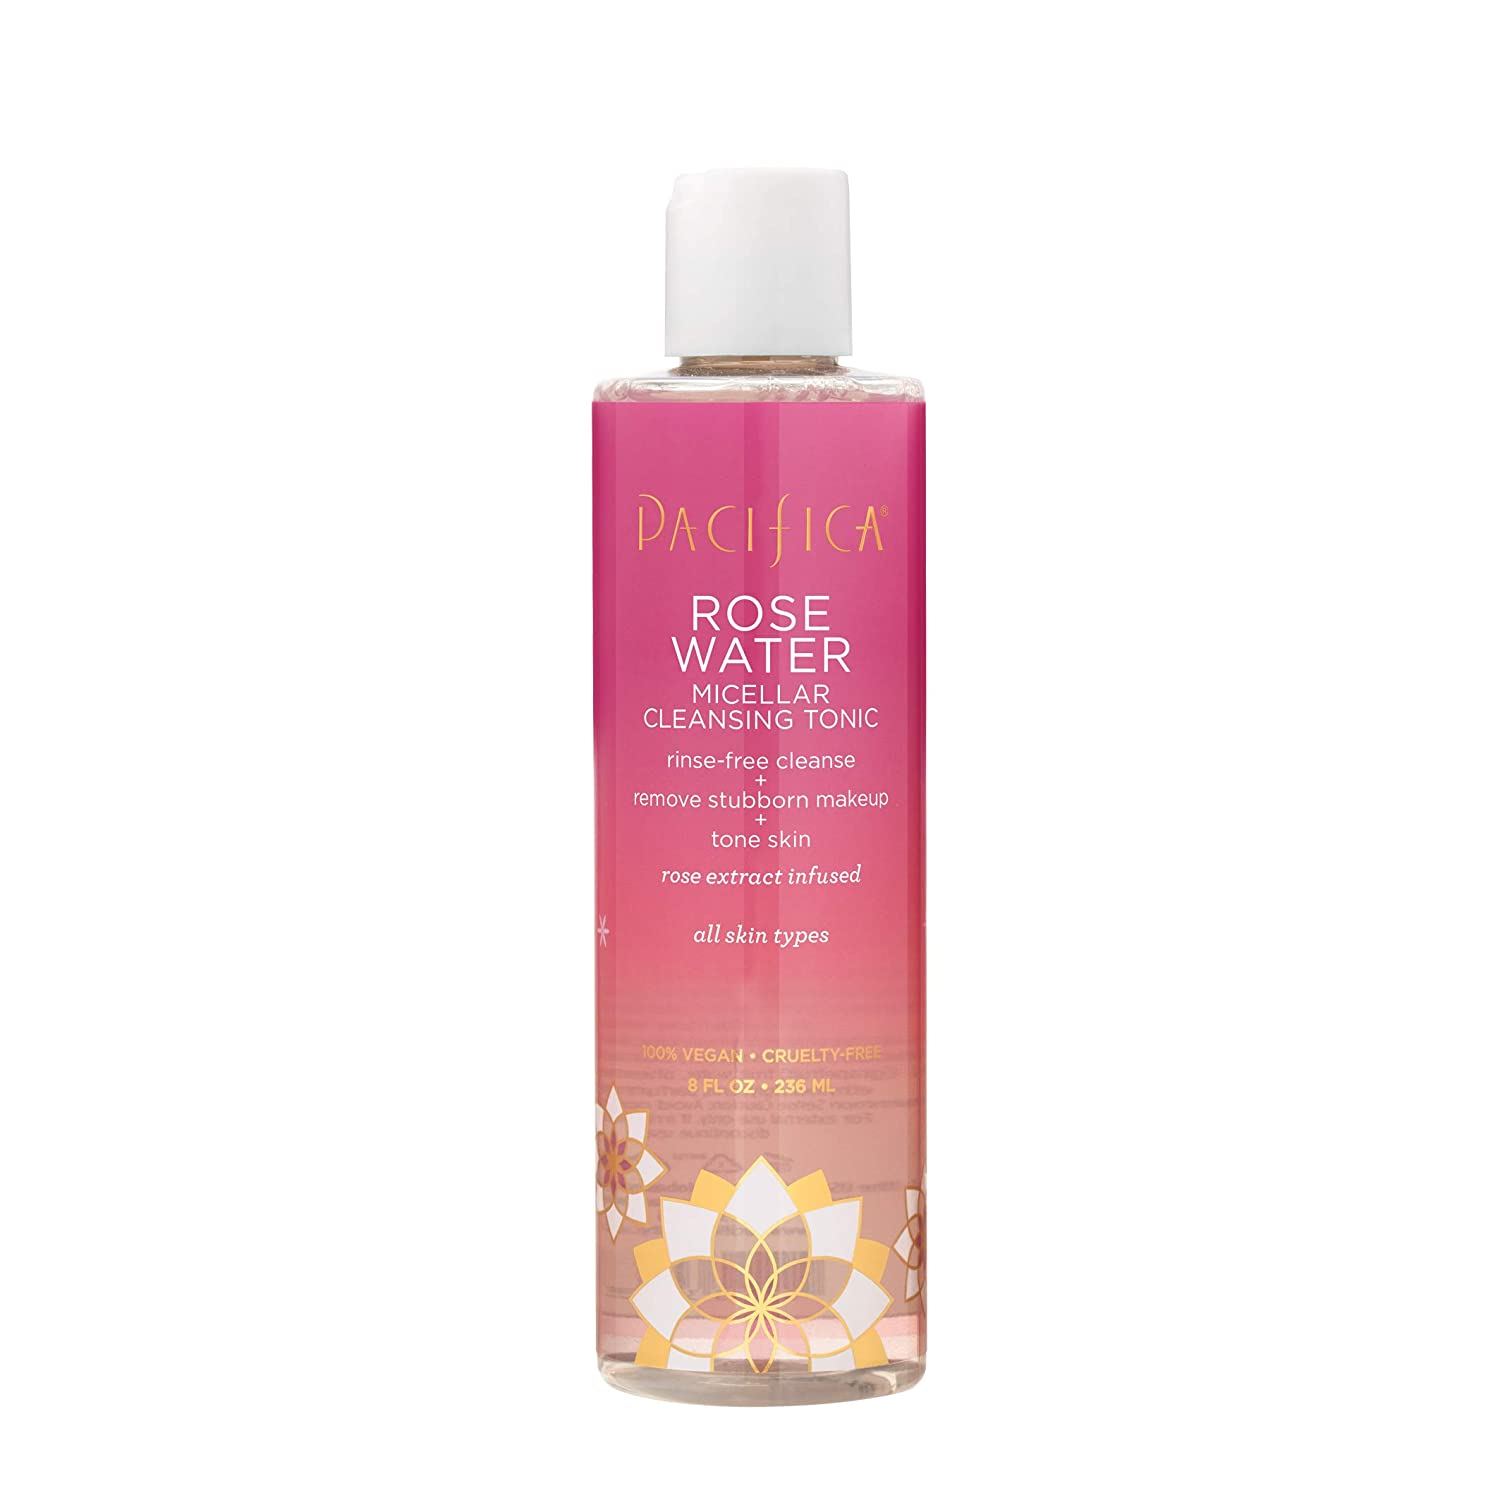 Pacifica Rose Water Micellar Cleansing Tonic, 8 Oz